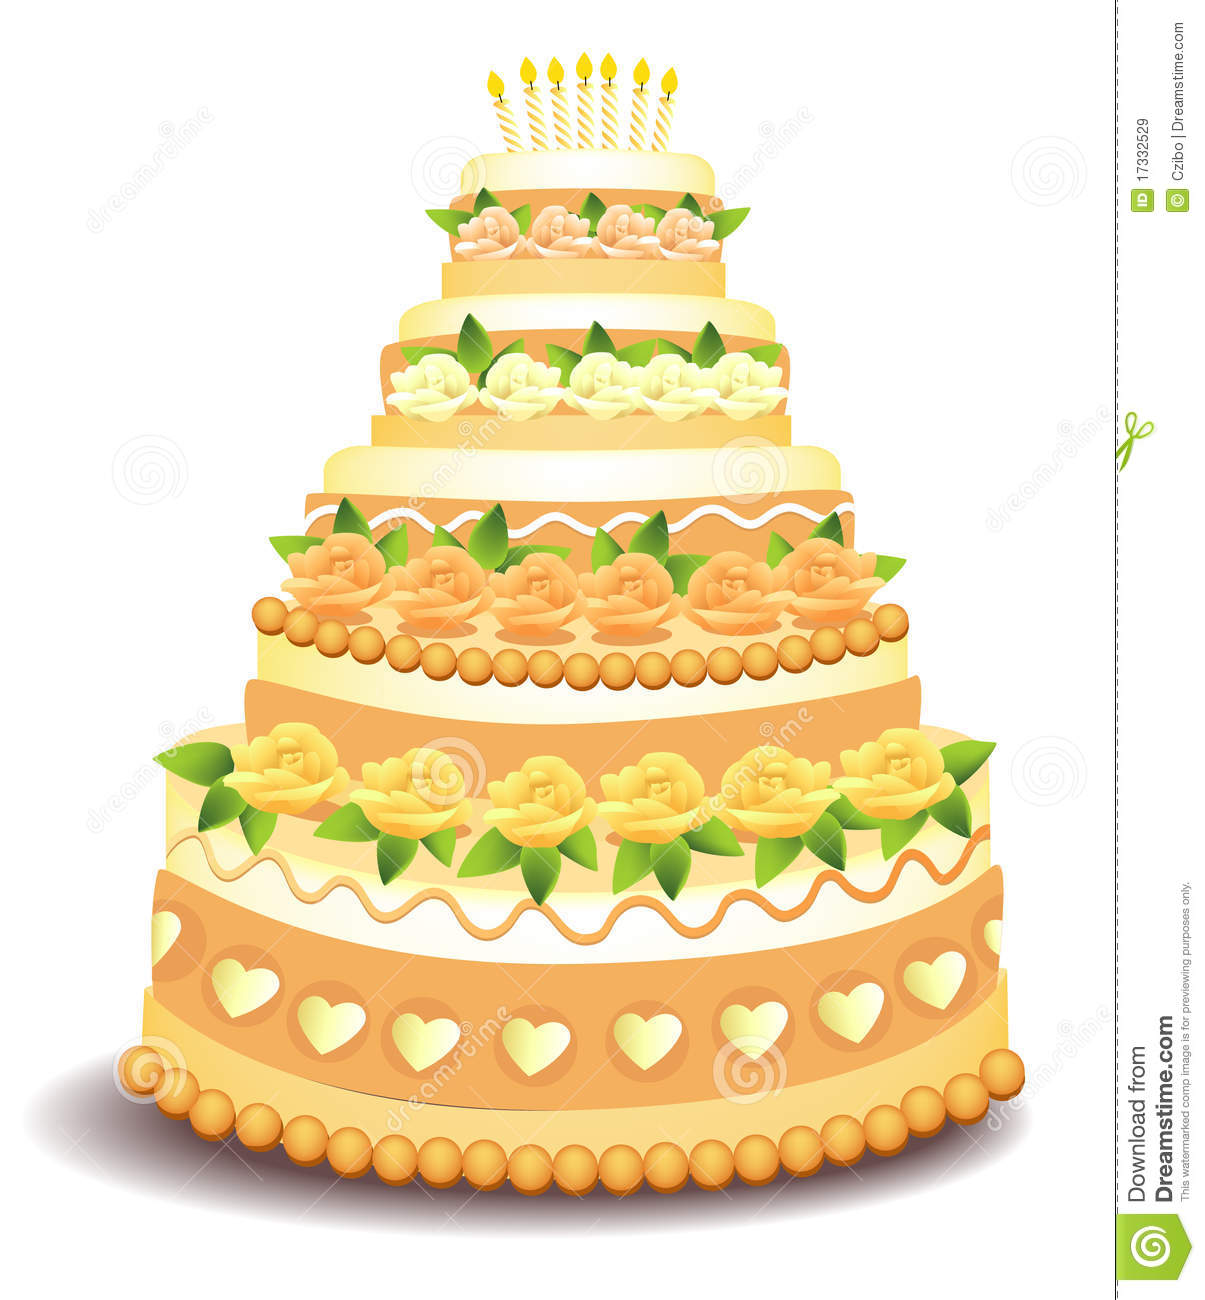 Big Cake Royalty Free Stock Images - Image: 17332529